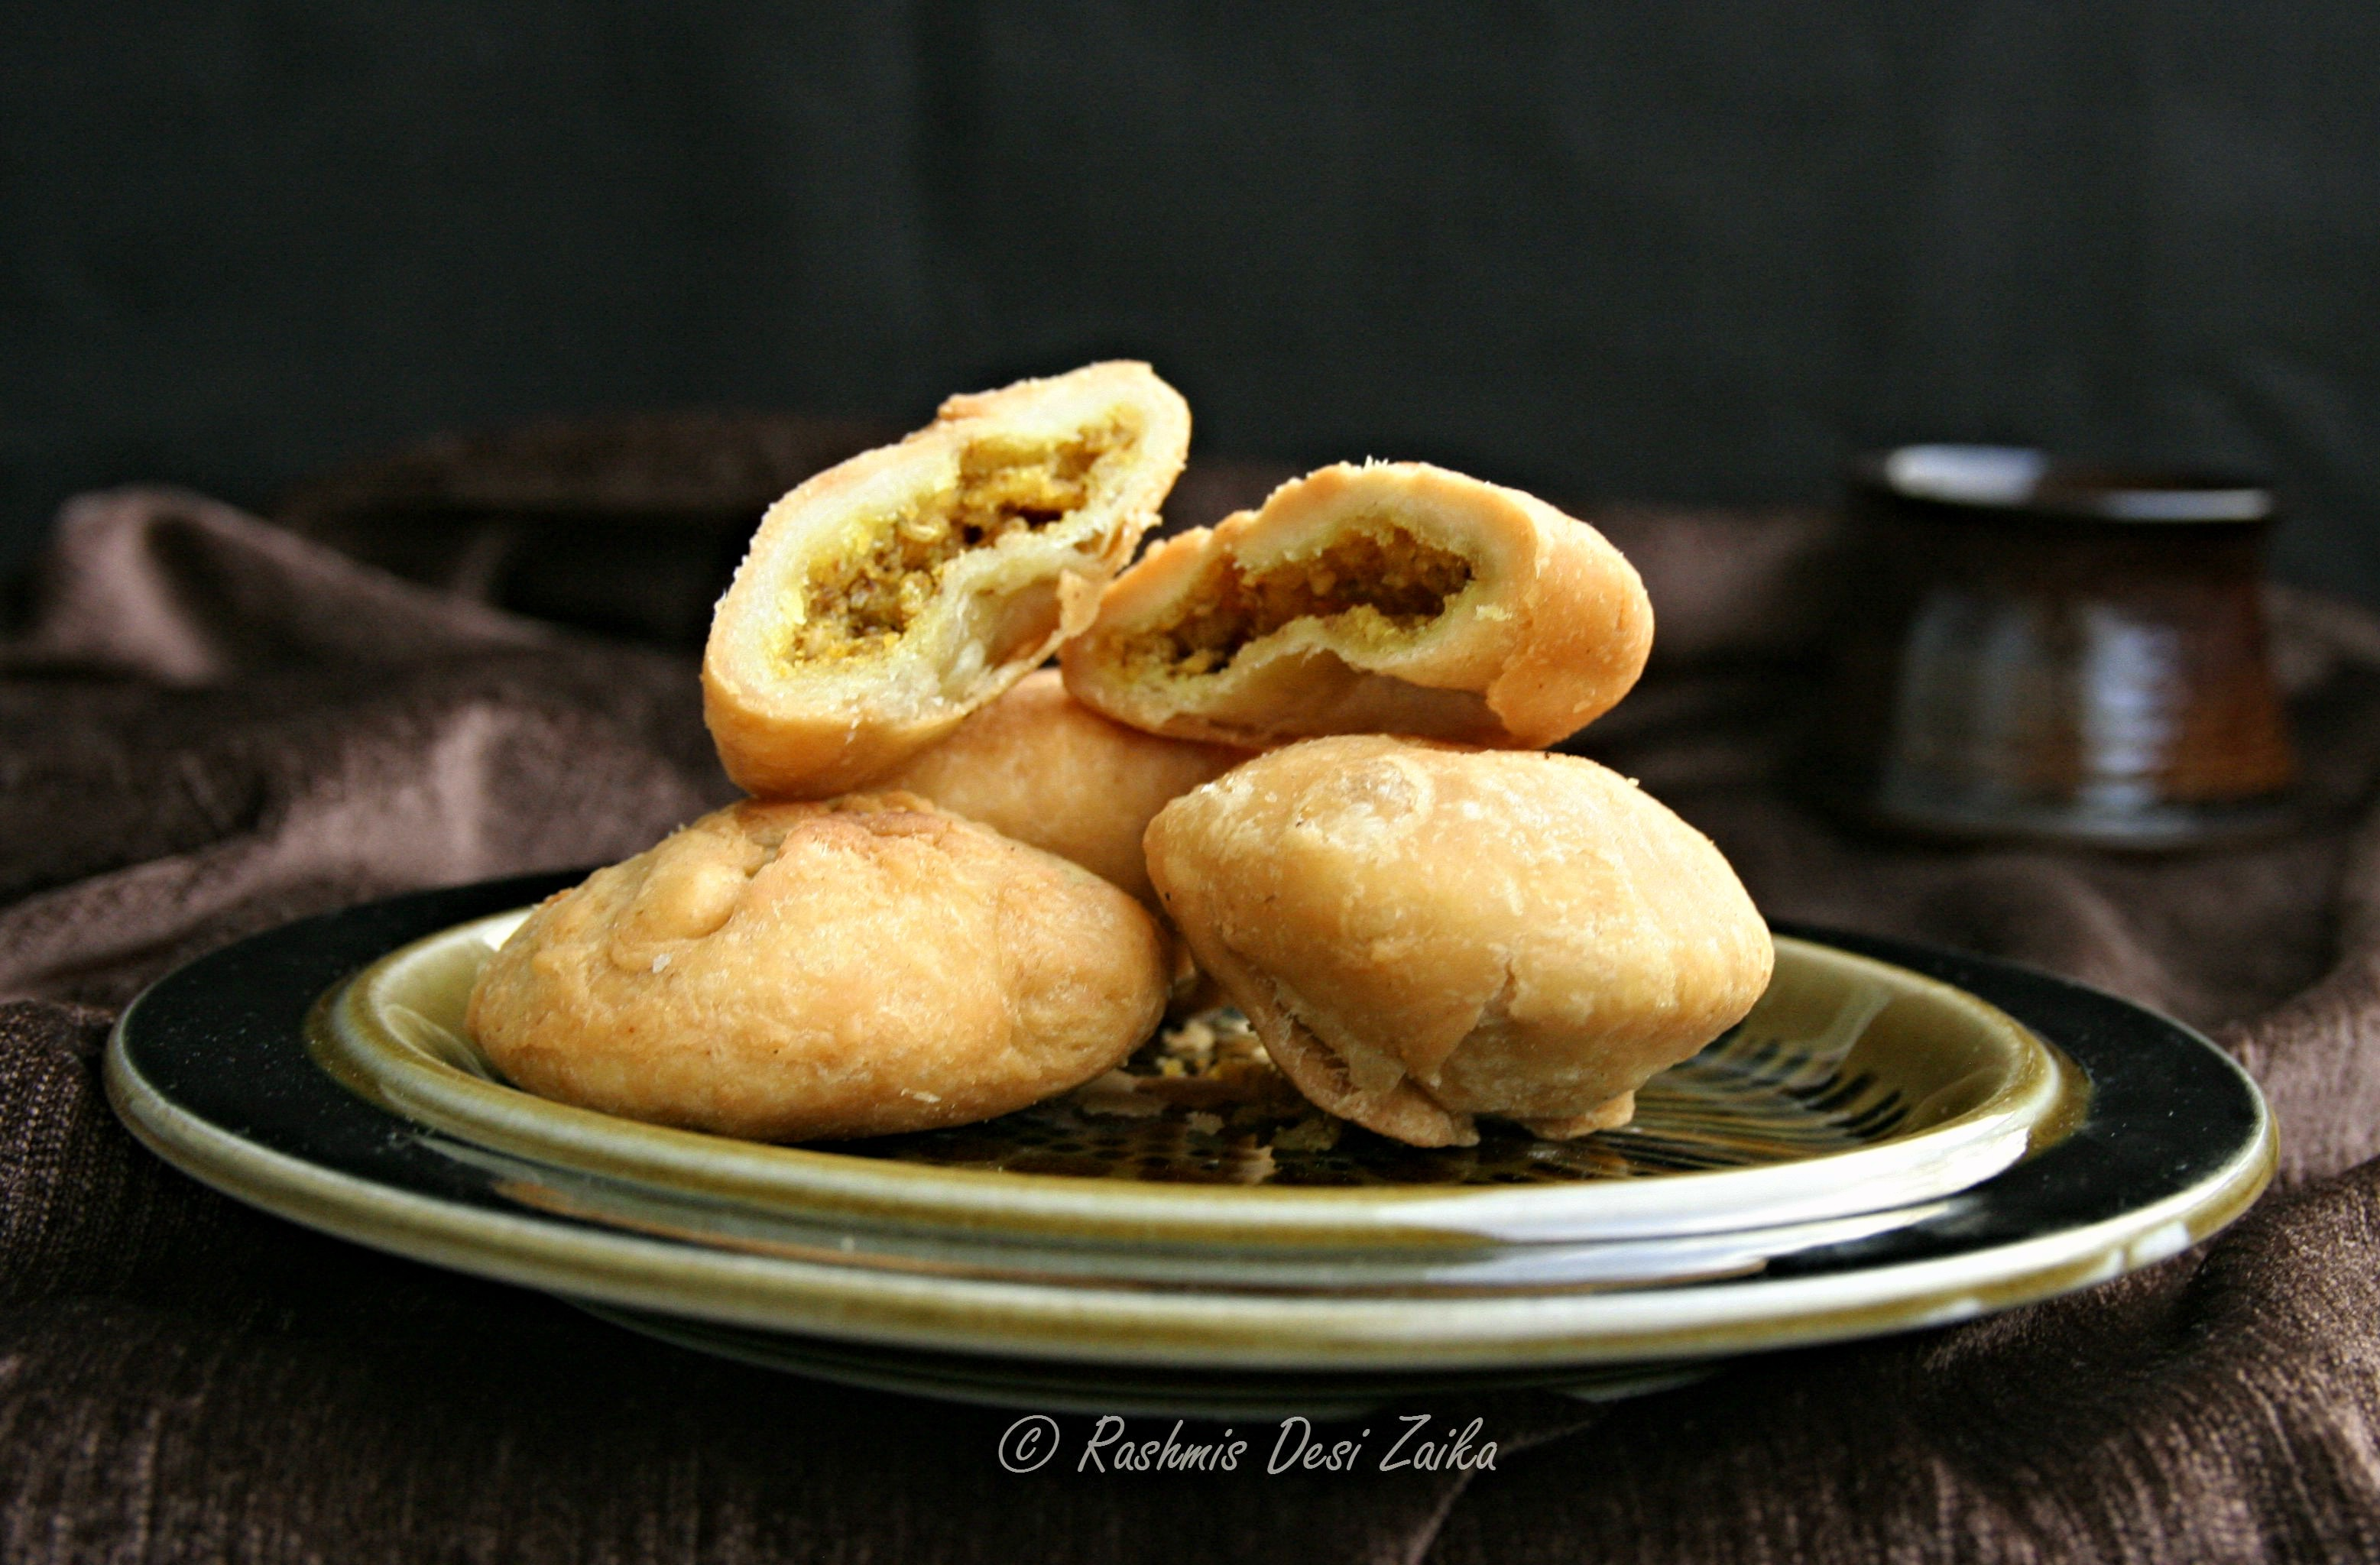 Khasta Dal Kachoris-Spiced Lentils Stuffed Kachoris